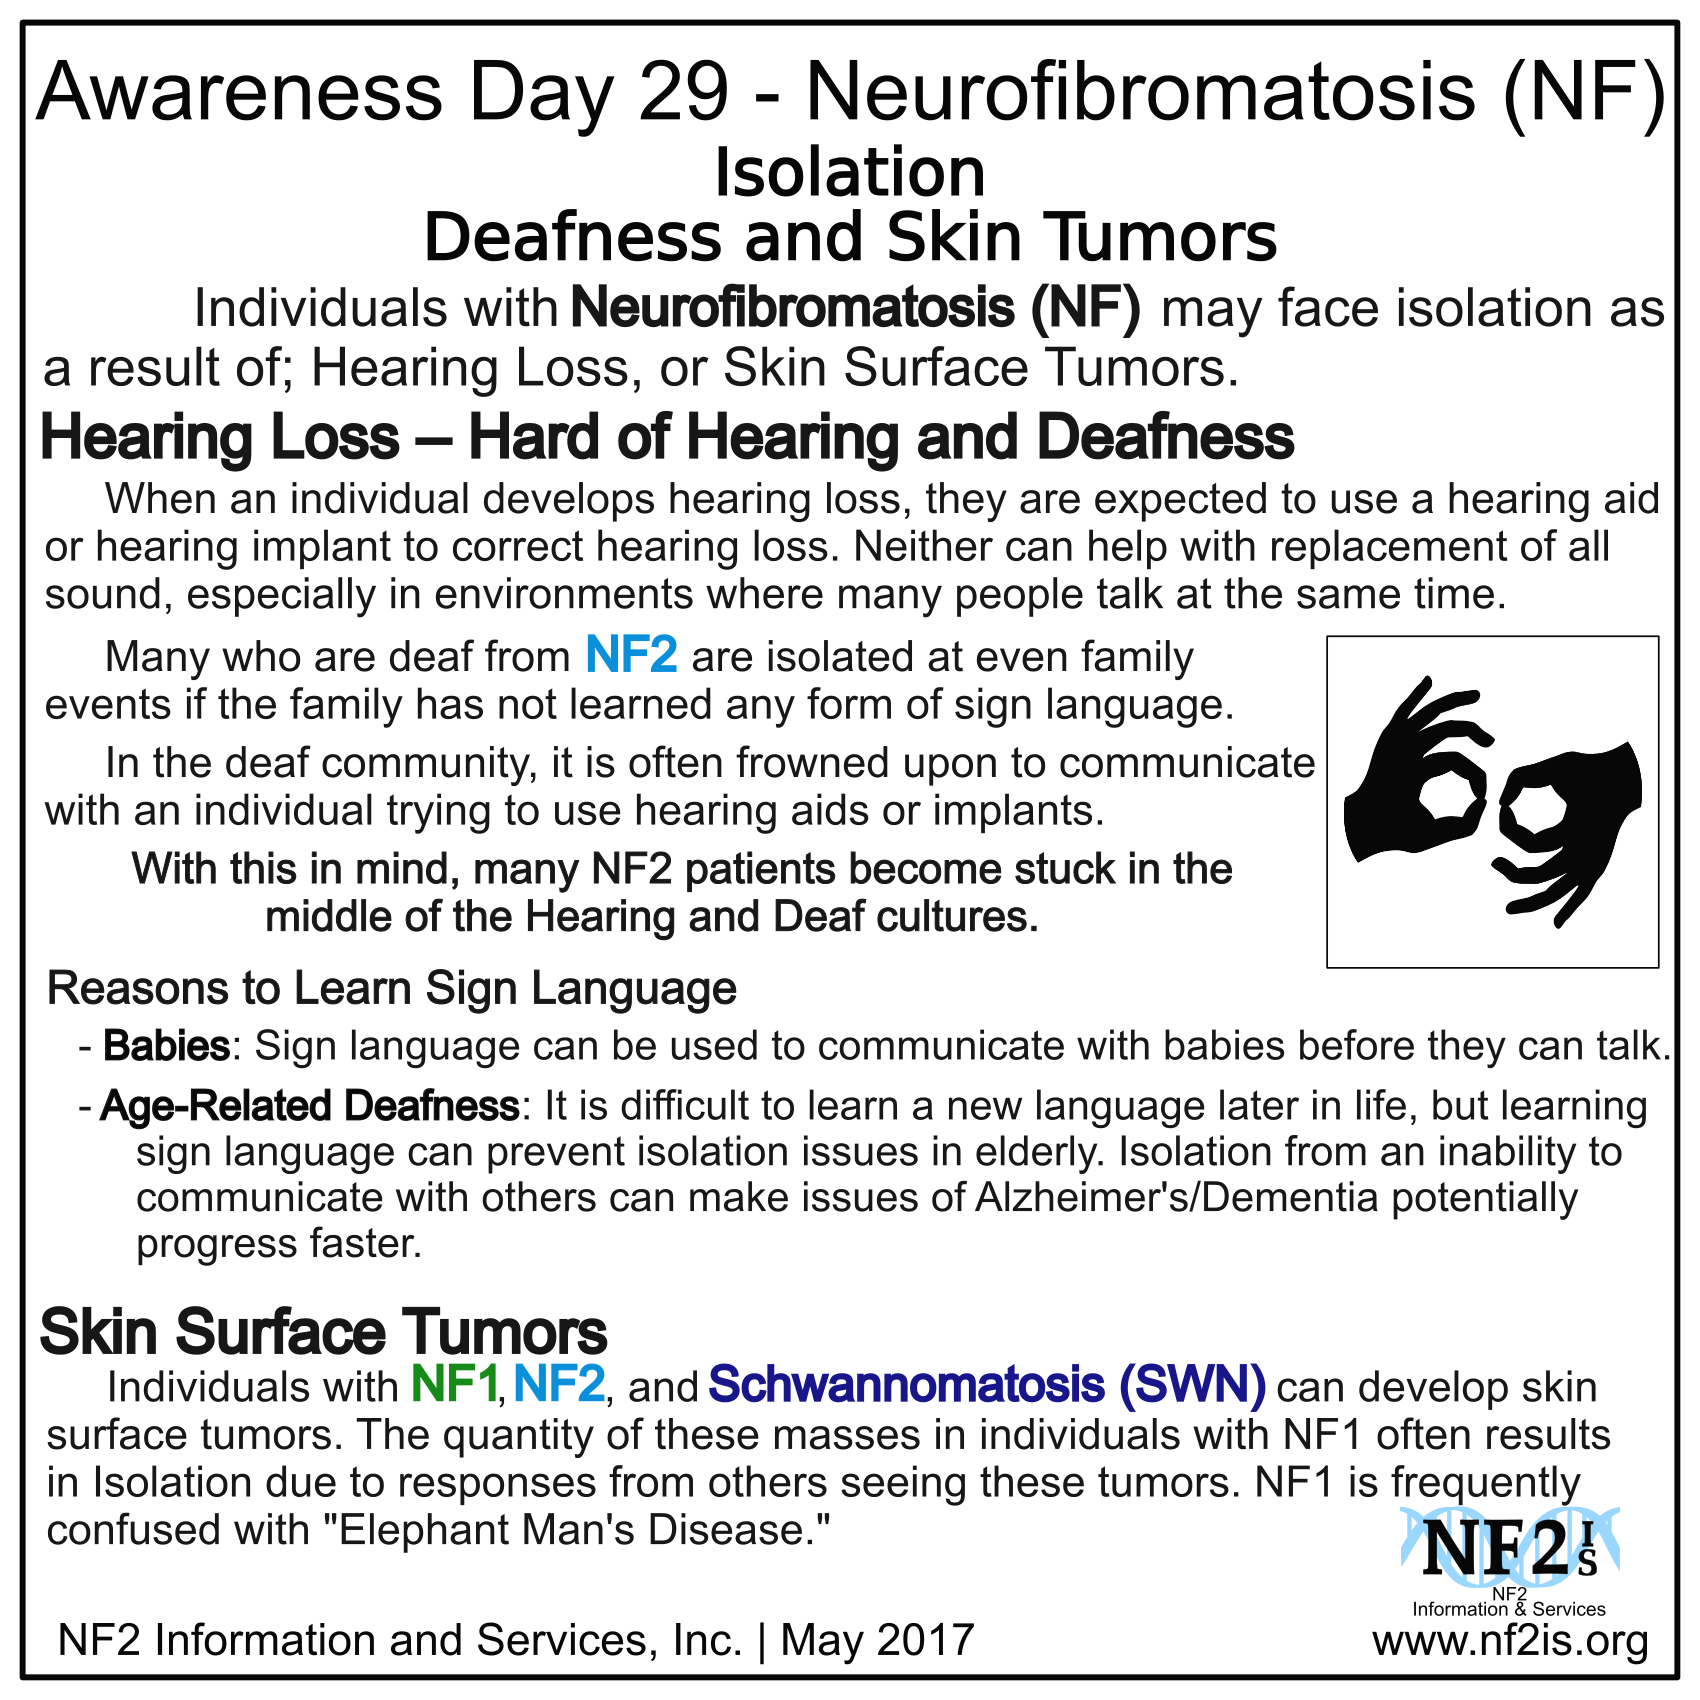 NF, isolation, deafness, skin tumors